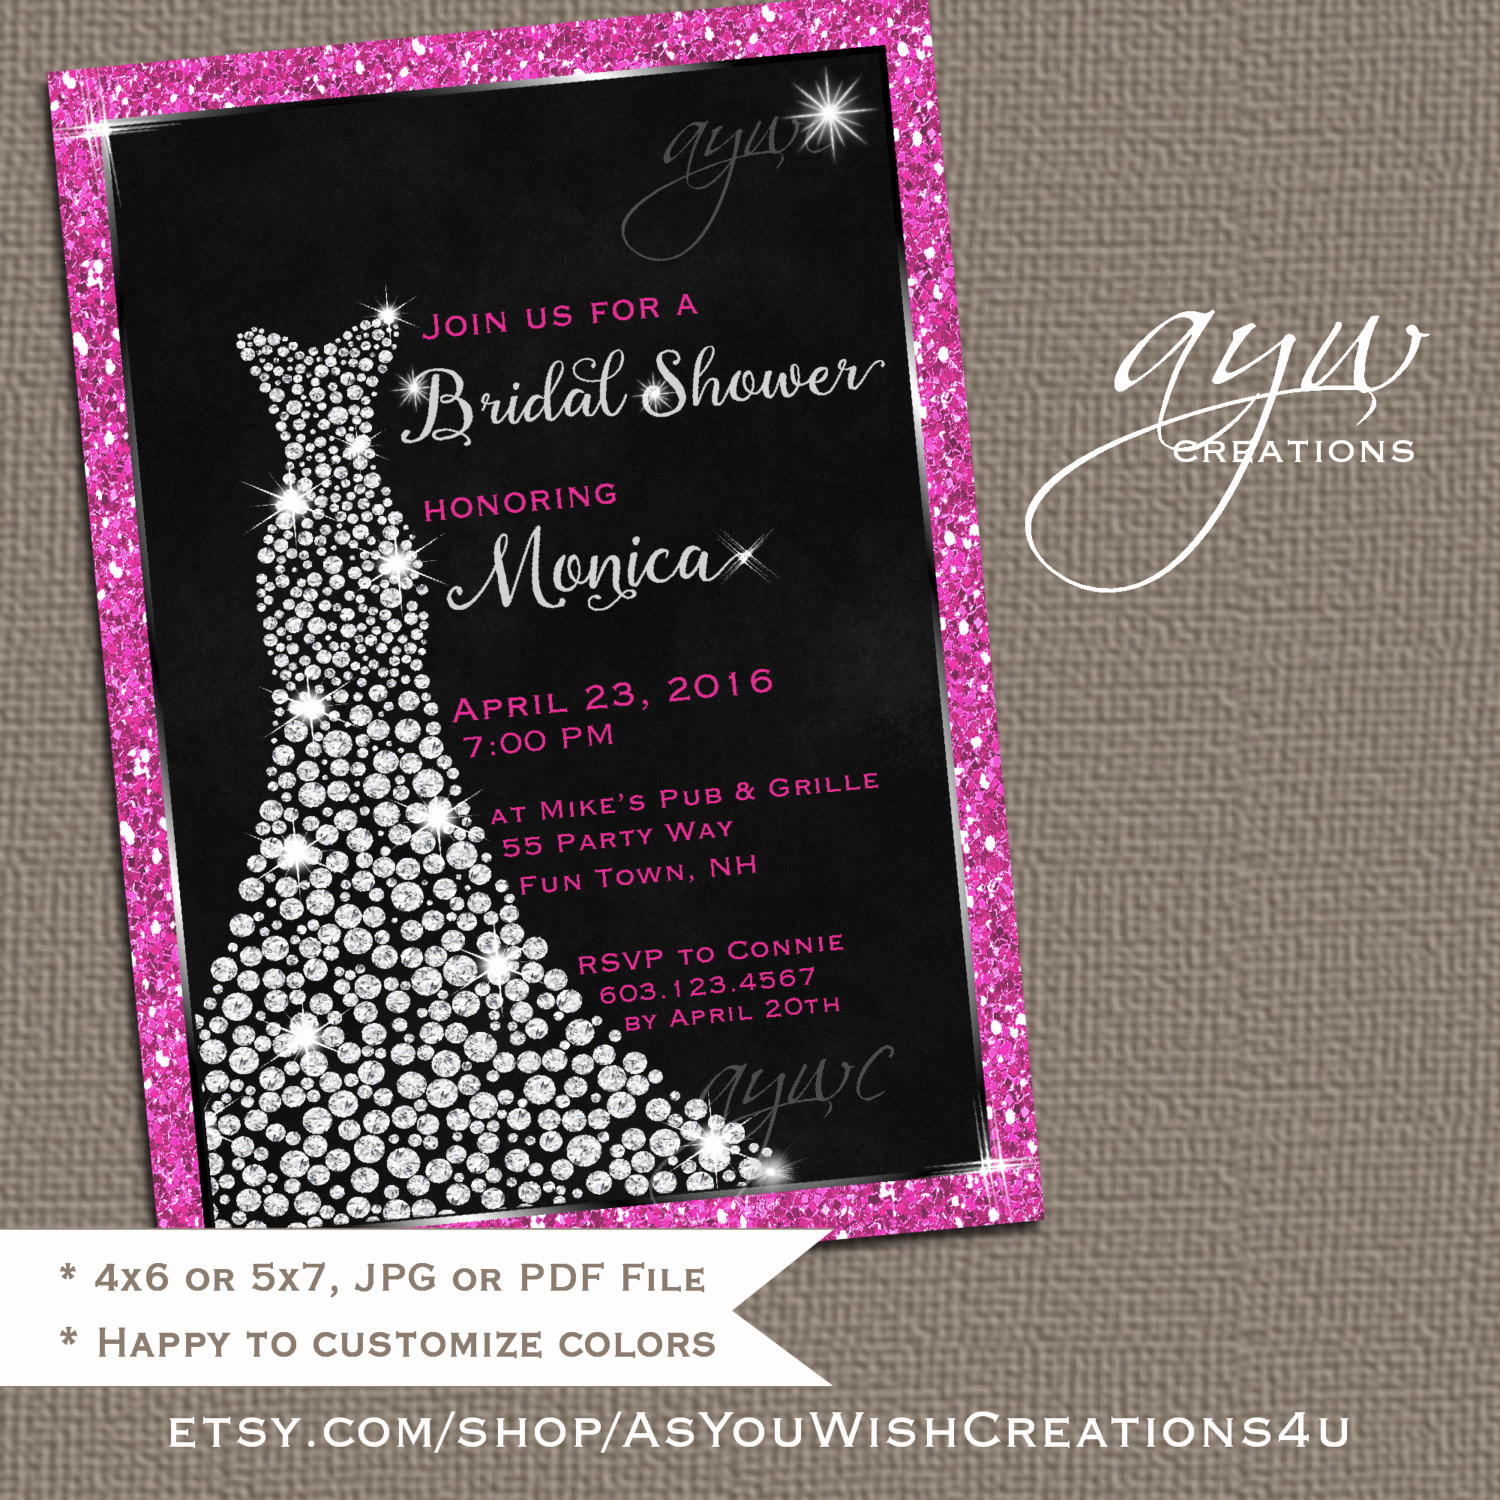 Printable Bridal Shower Invitations Awesome Wedding Dress Bridal Shower Invitation Printable Bridal Shower